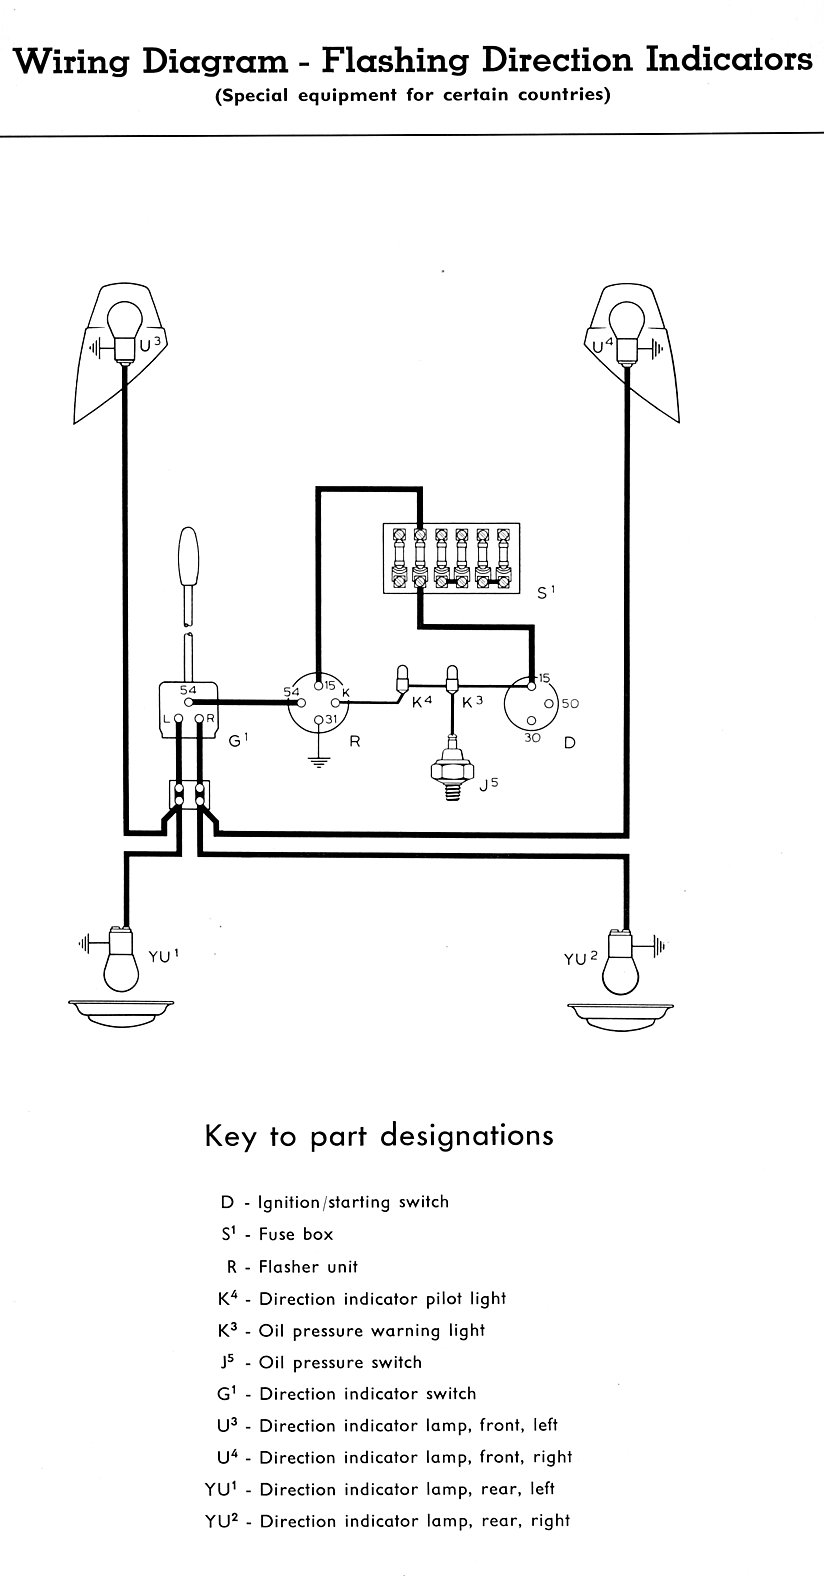 medium resolution of wiring diagram signals wiring diagram sample wiring diagram for model railway signals wiring diagram signals